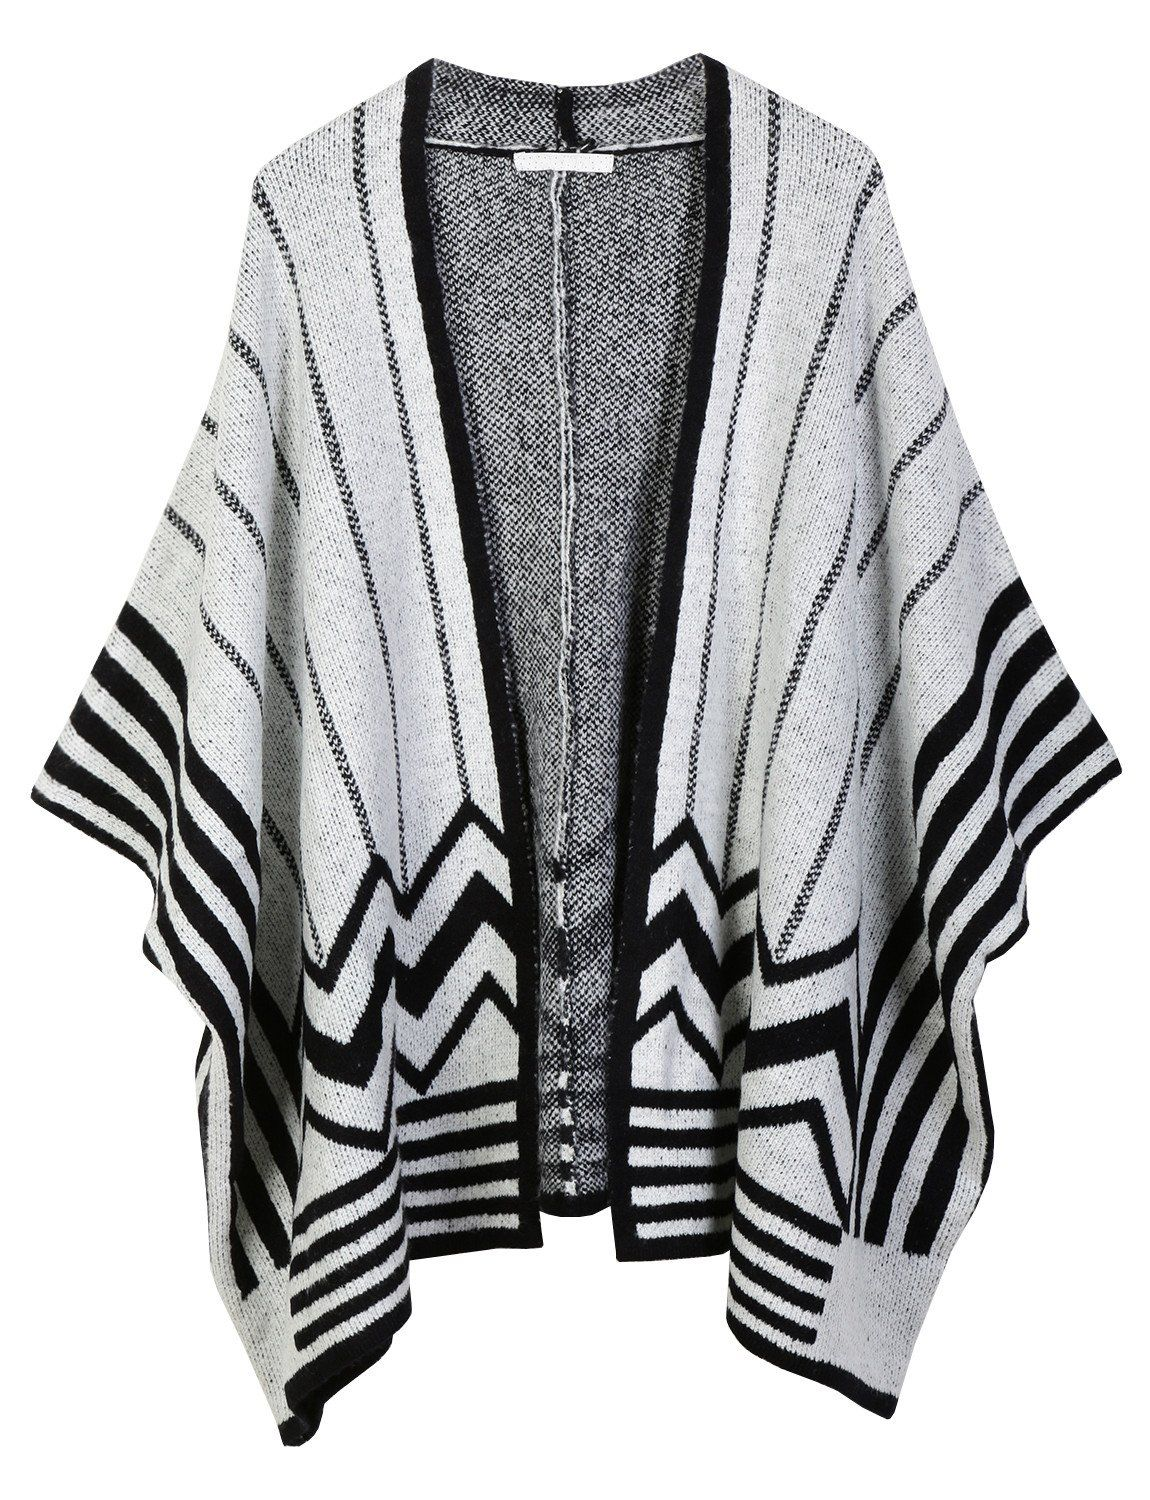 4c3465b68f2 LE3NO Womens Midweight Zig Zag Striped Open Front Knit Poncho Cardigan  (CLEARANCE)